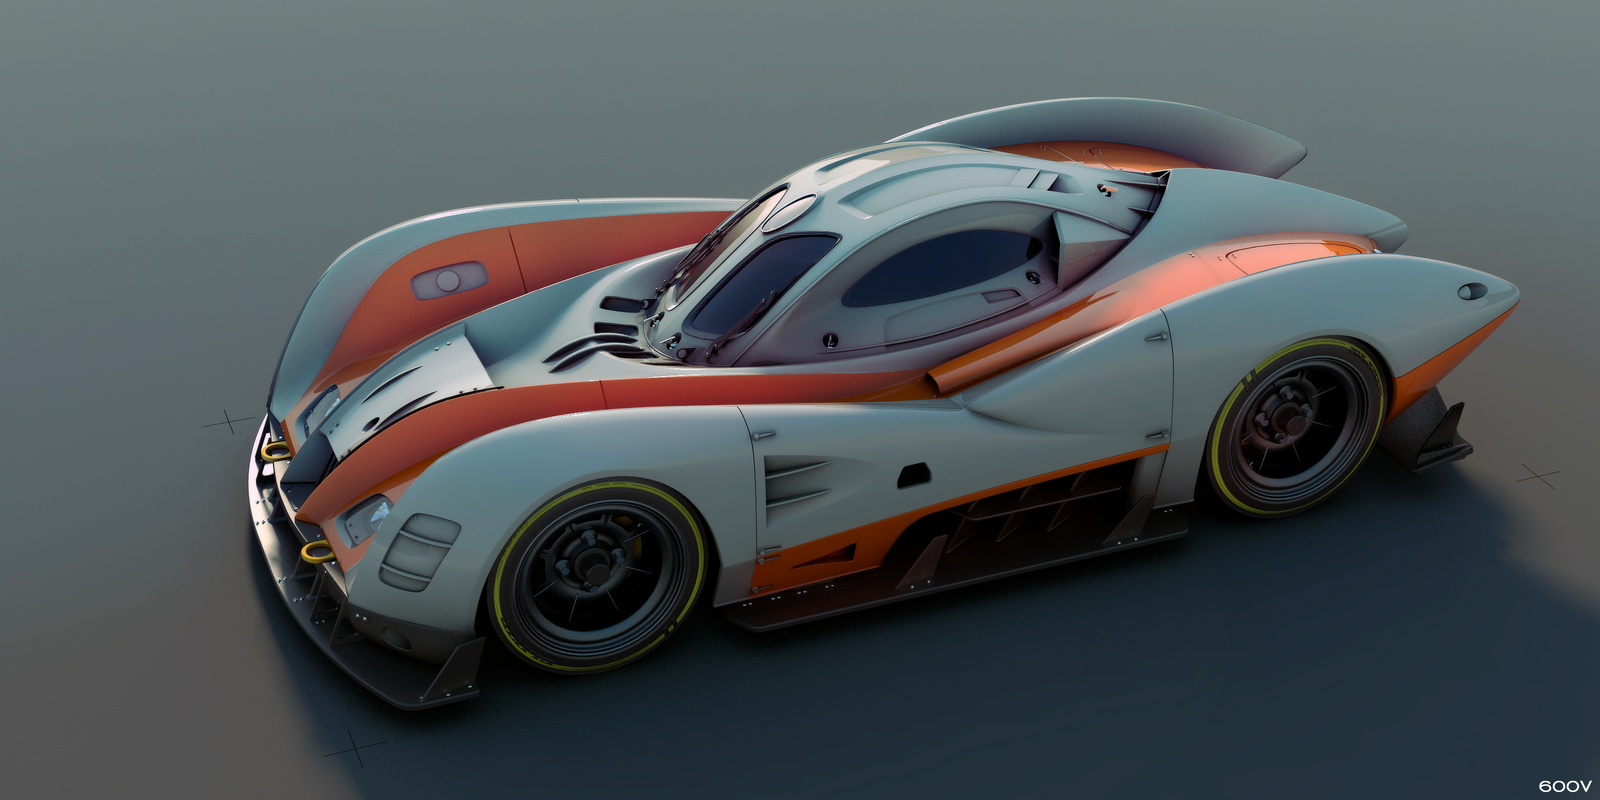 Moi discussion forum moi suitable for vehicle designs malvernweather Choice Image